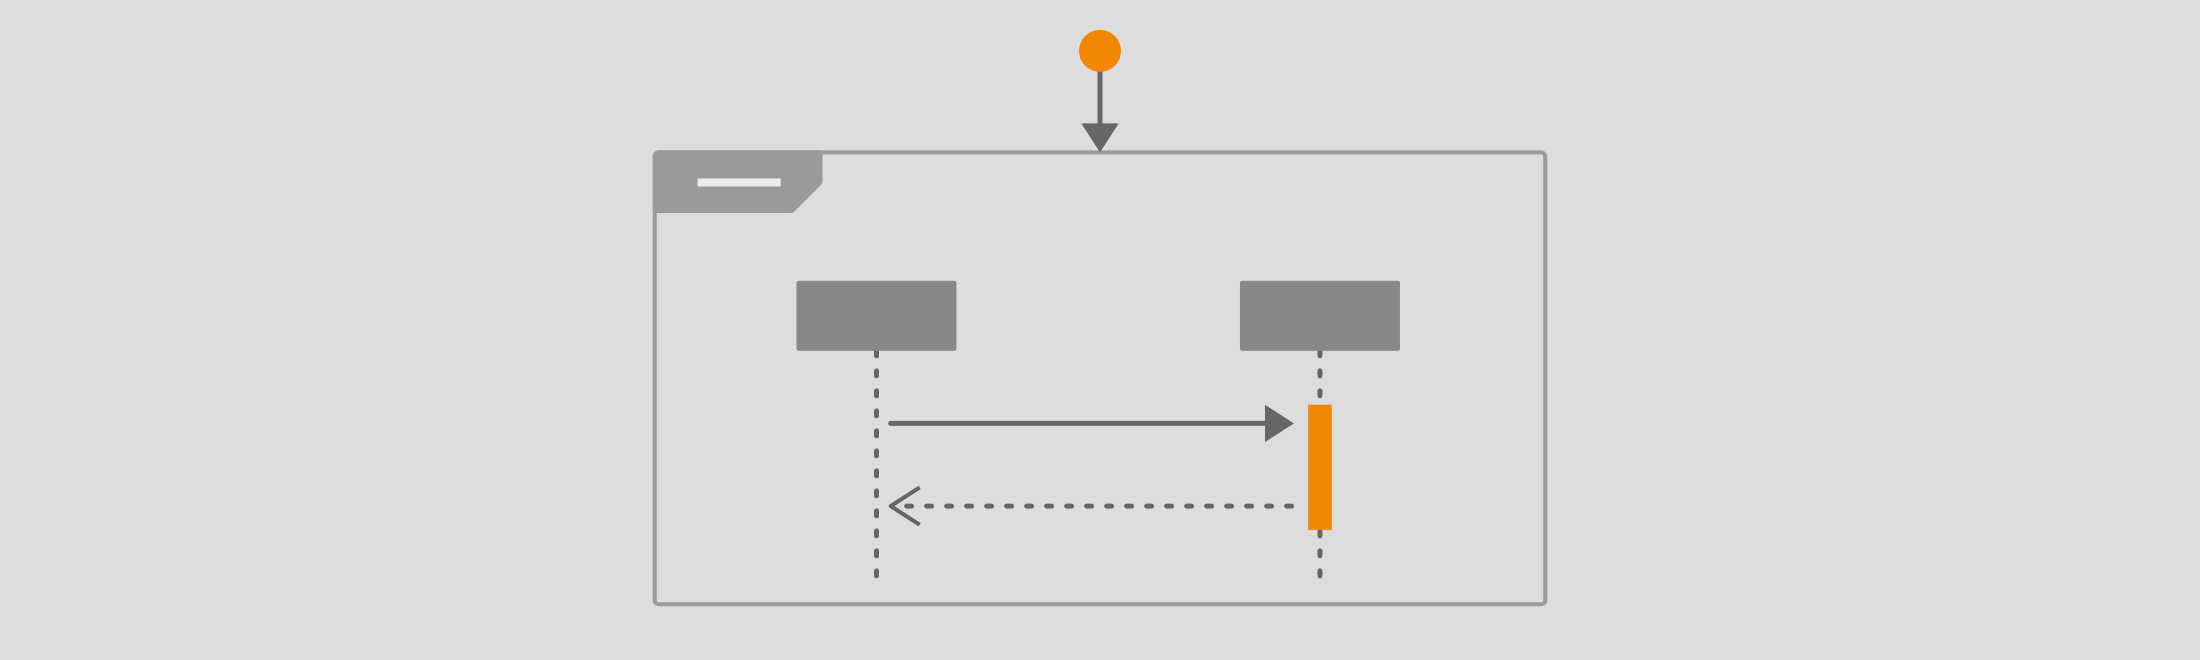 You can create UML interaction overview diagrams in draw.io. These UML diagrams are a combination of an activity diagram and sequence diagrams.